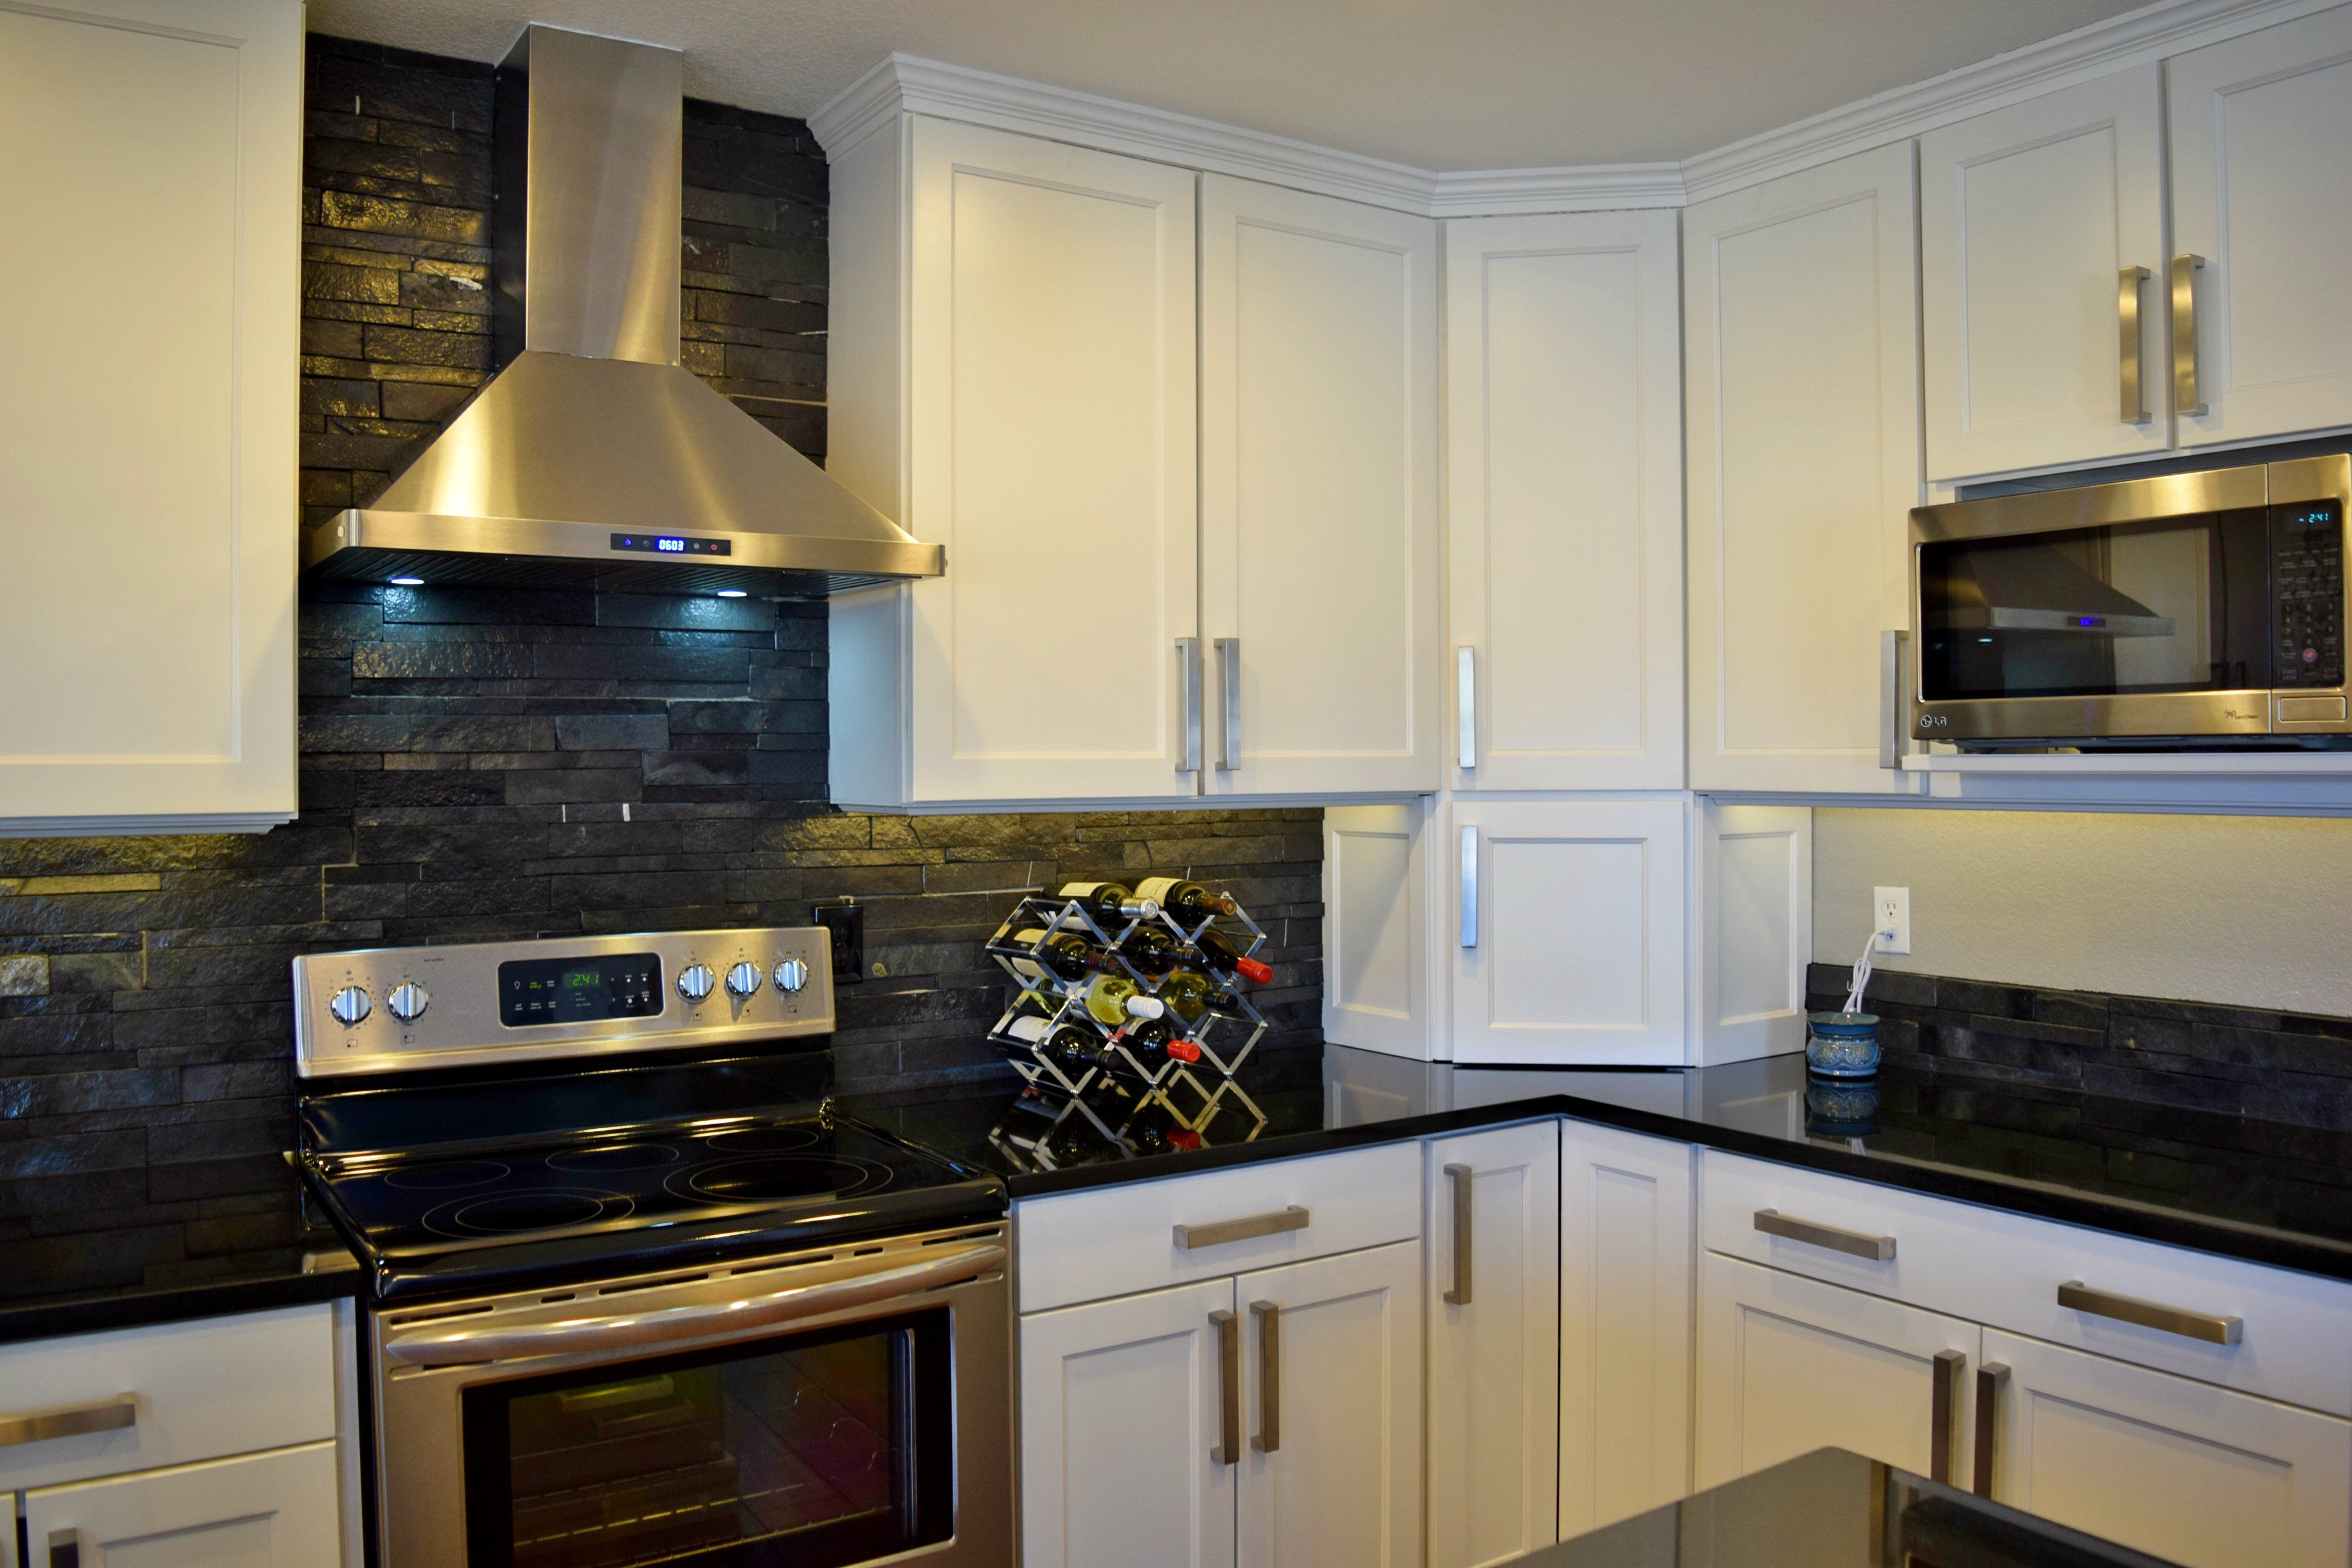 bkc kitchen and bath mid continent cabinetry parker door style